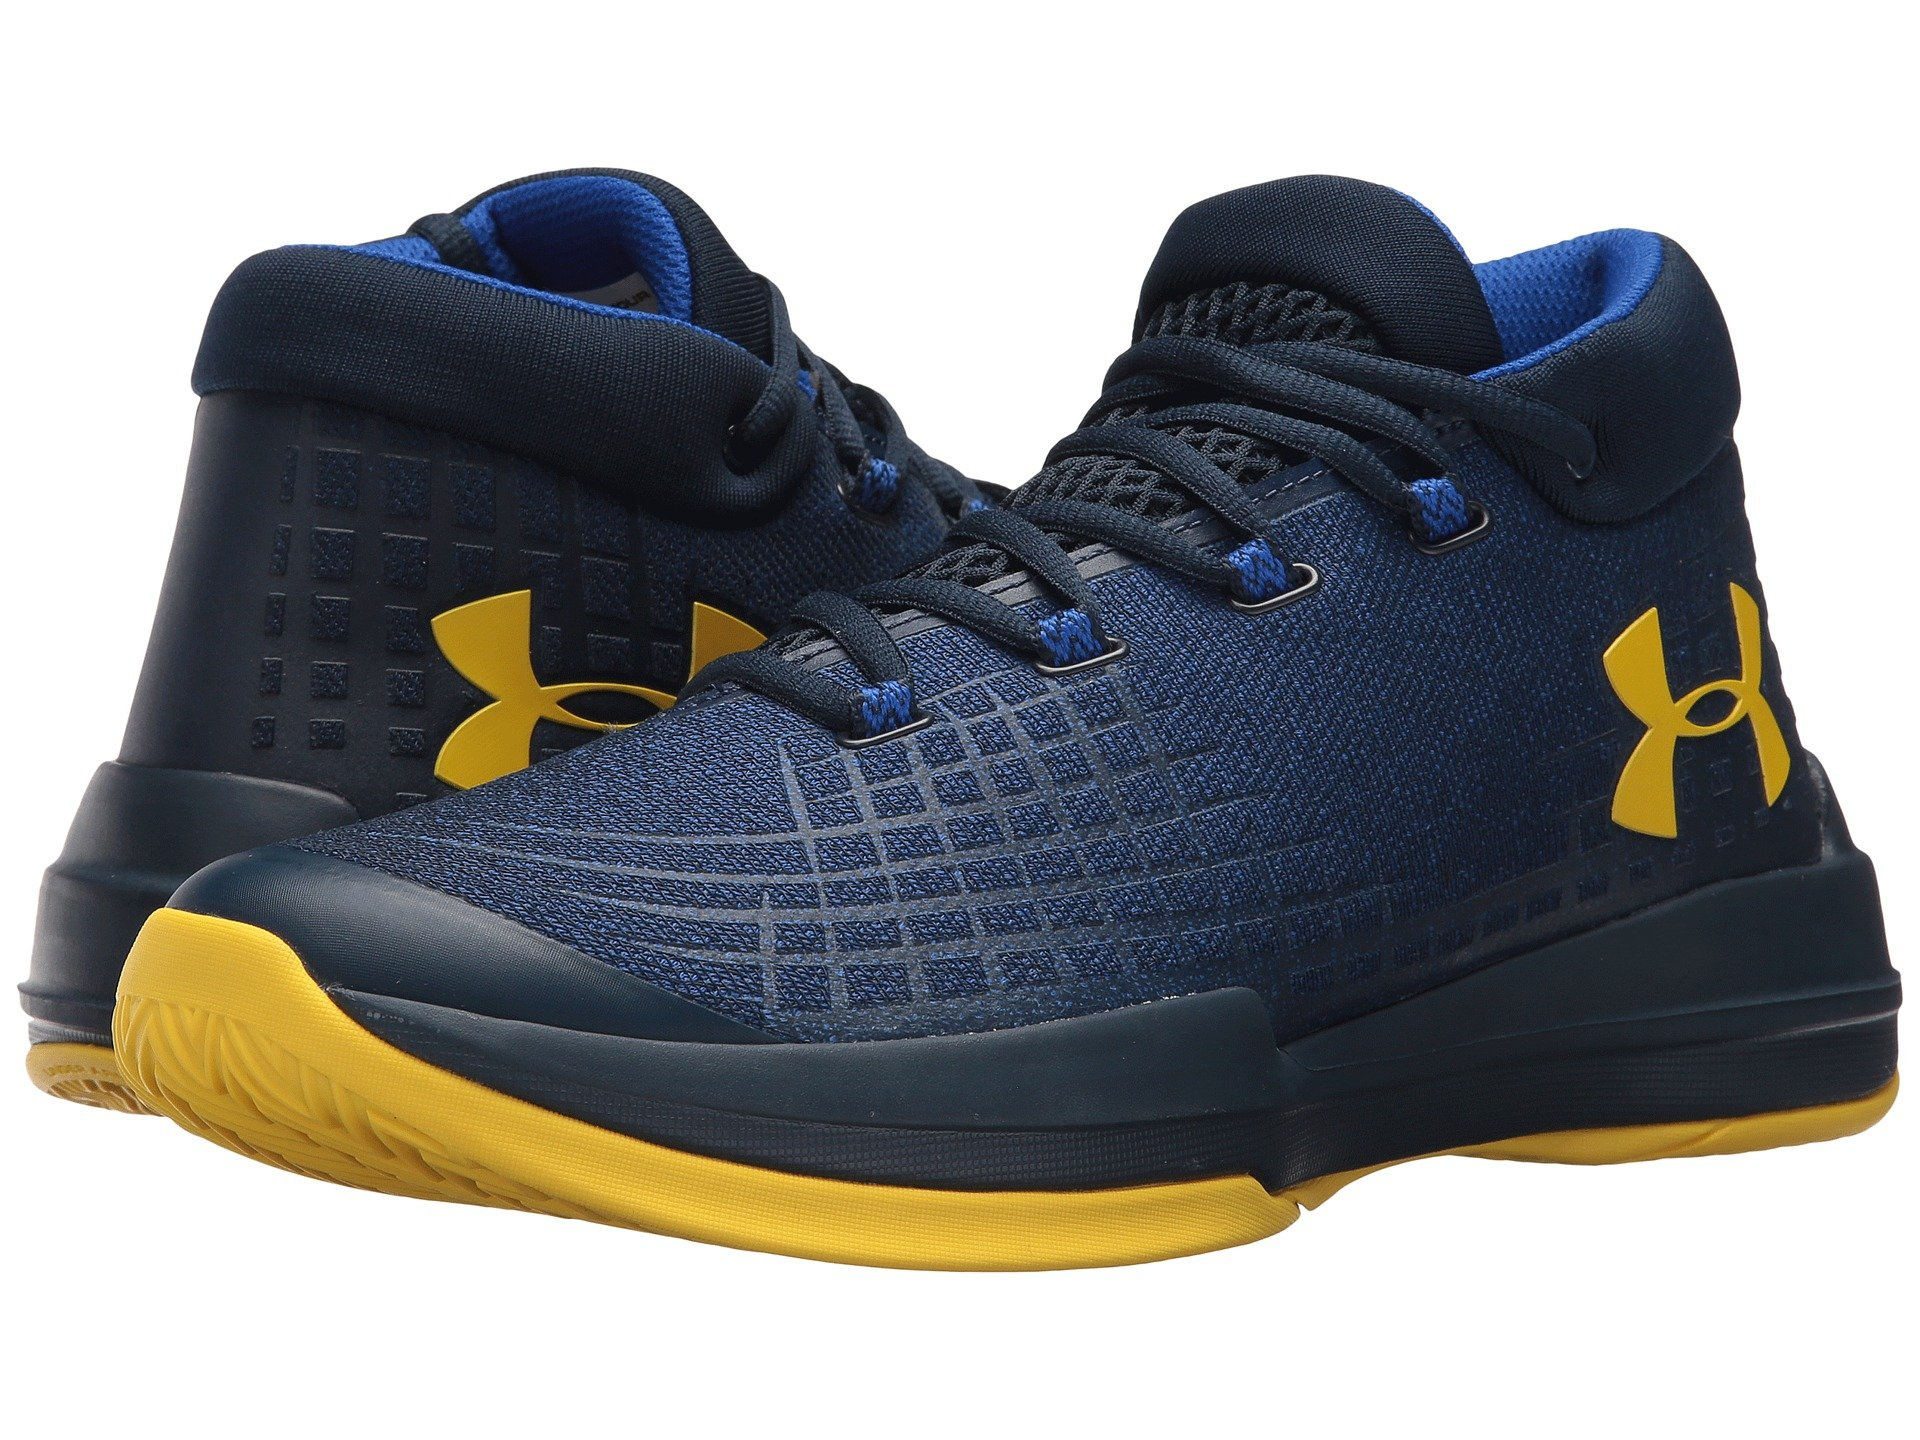 Under Armour Ua Nxt At 6pm